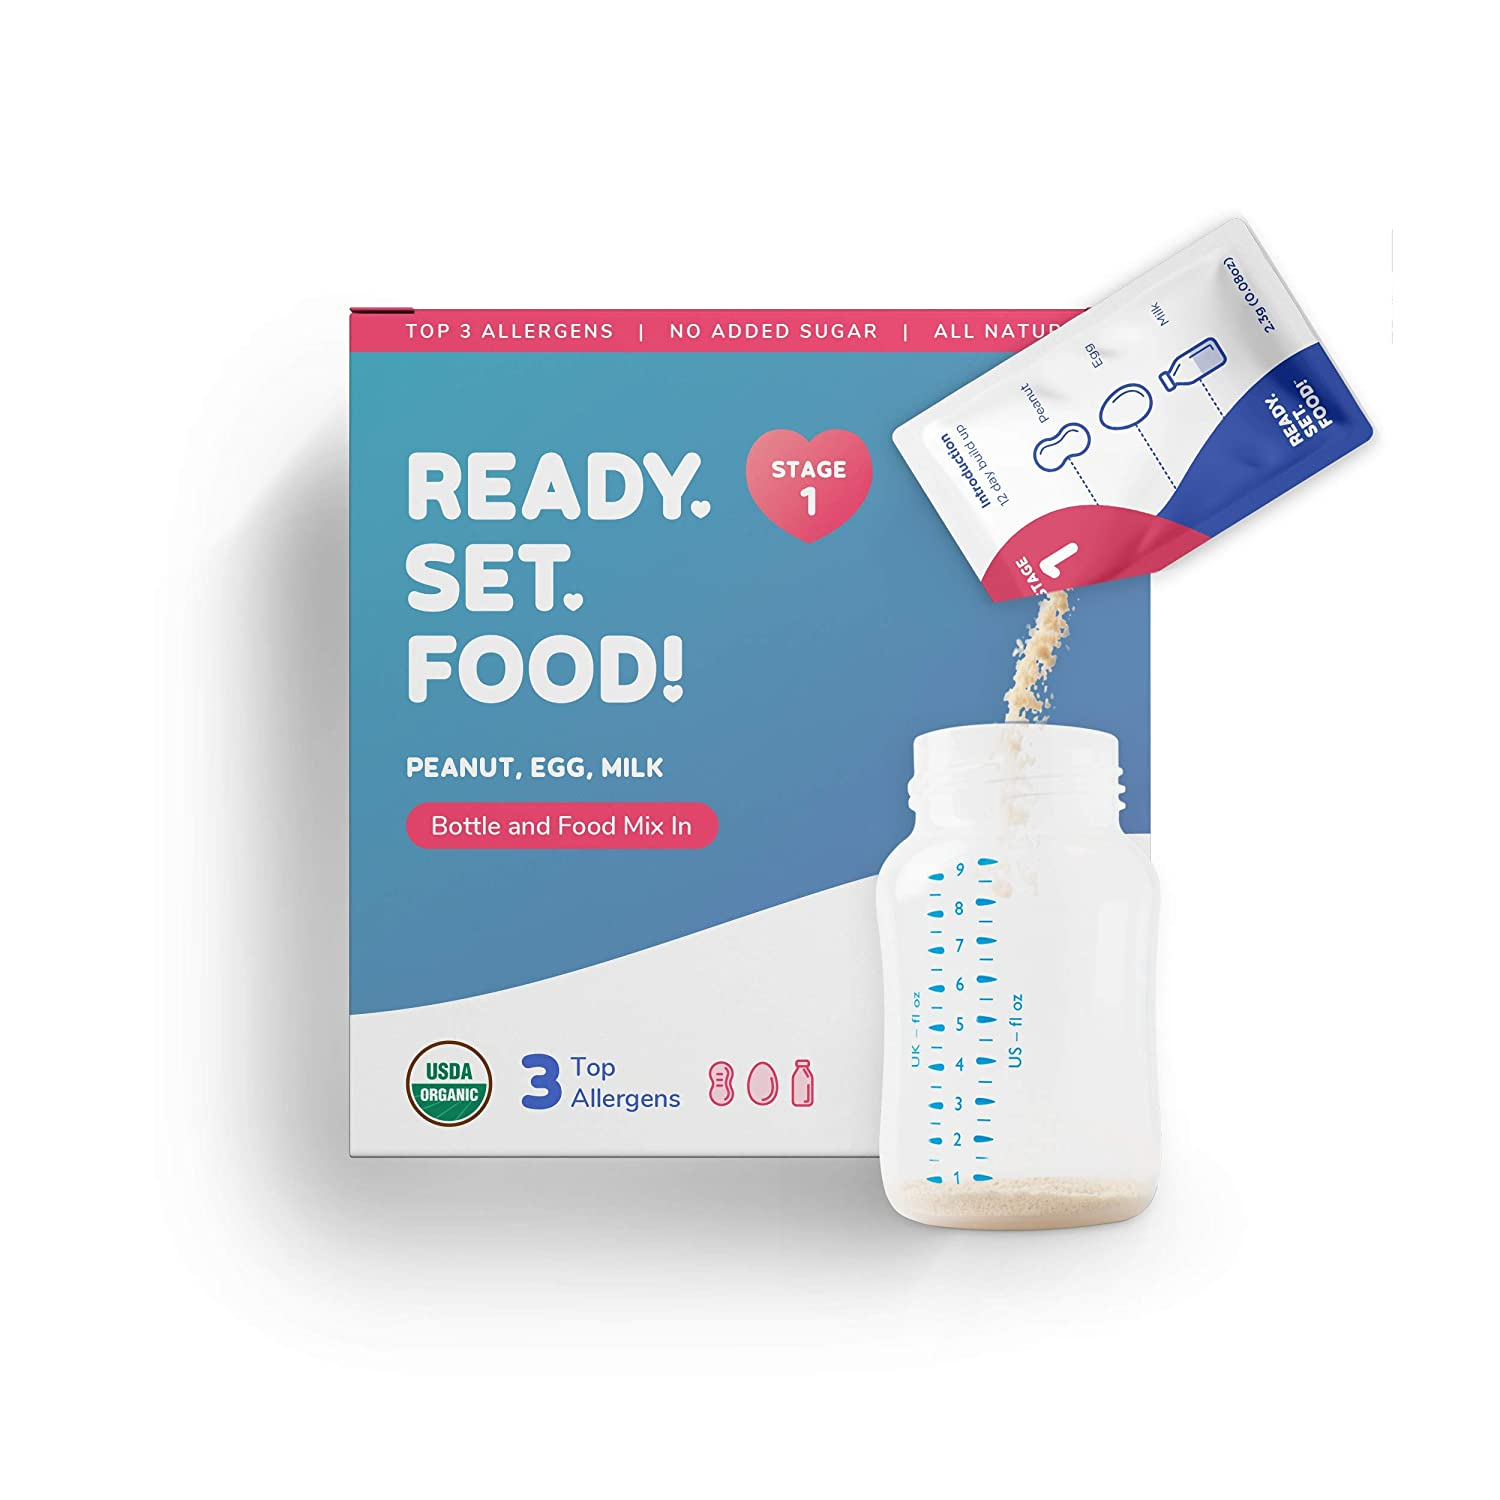 Early Allergen Introduction System for Babies 4+ Mo | Stage 1 - 30 Days | Safe, Easy & Effective | Top 3 Allergen Intro (Organic Peanut Egg Milk) | Mix into Bottle or Food | Ready Set Food